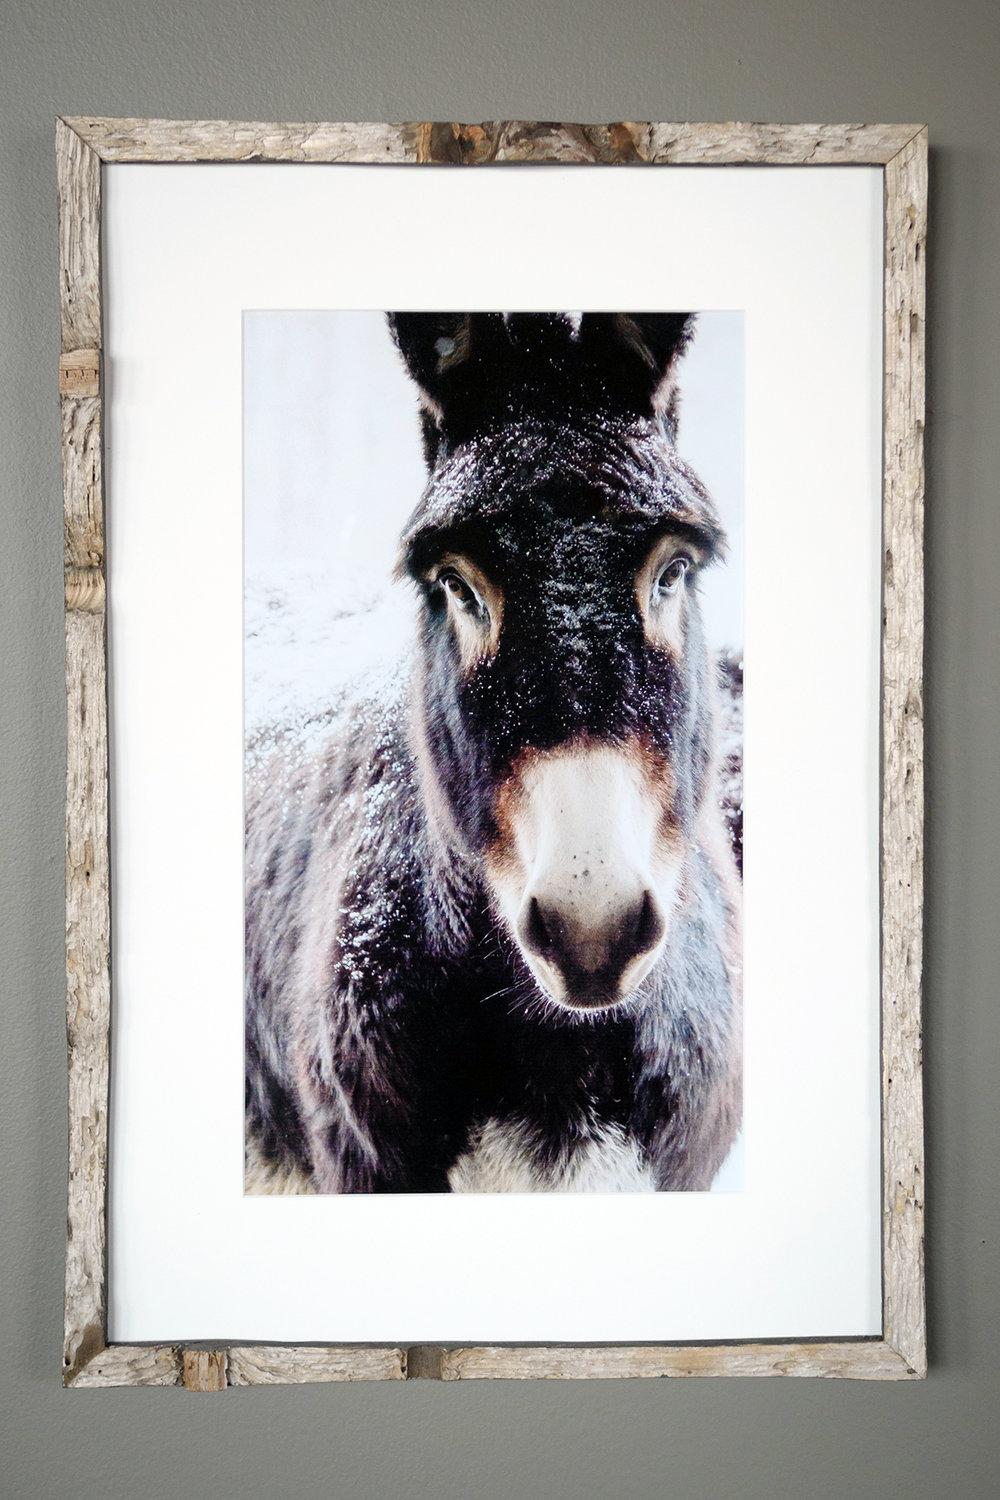 Dark Donkey - North Star Sheep Farm (SOLD)